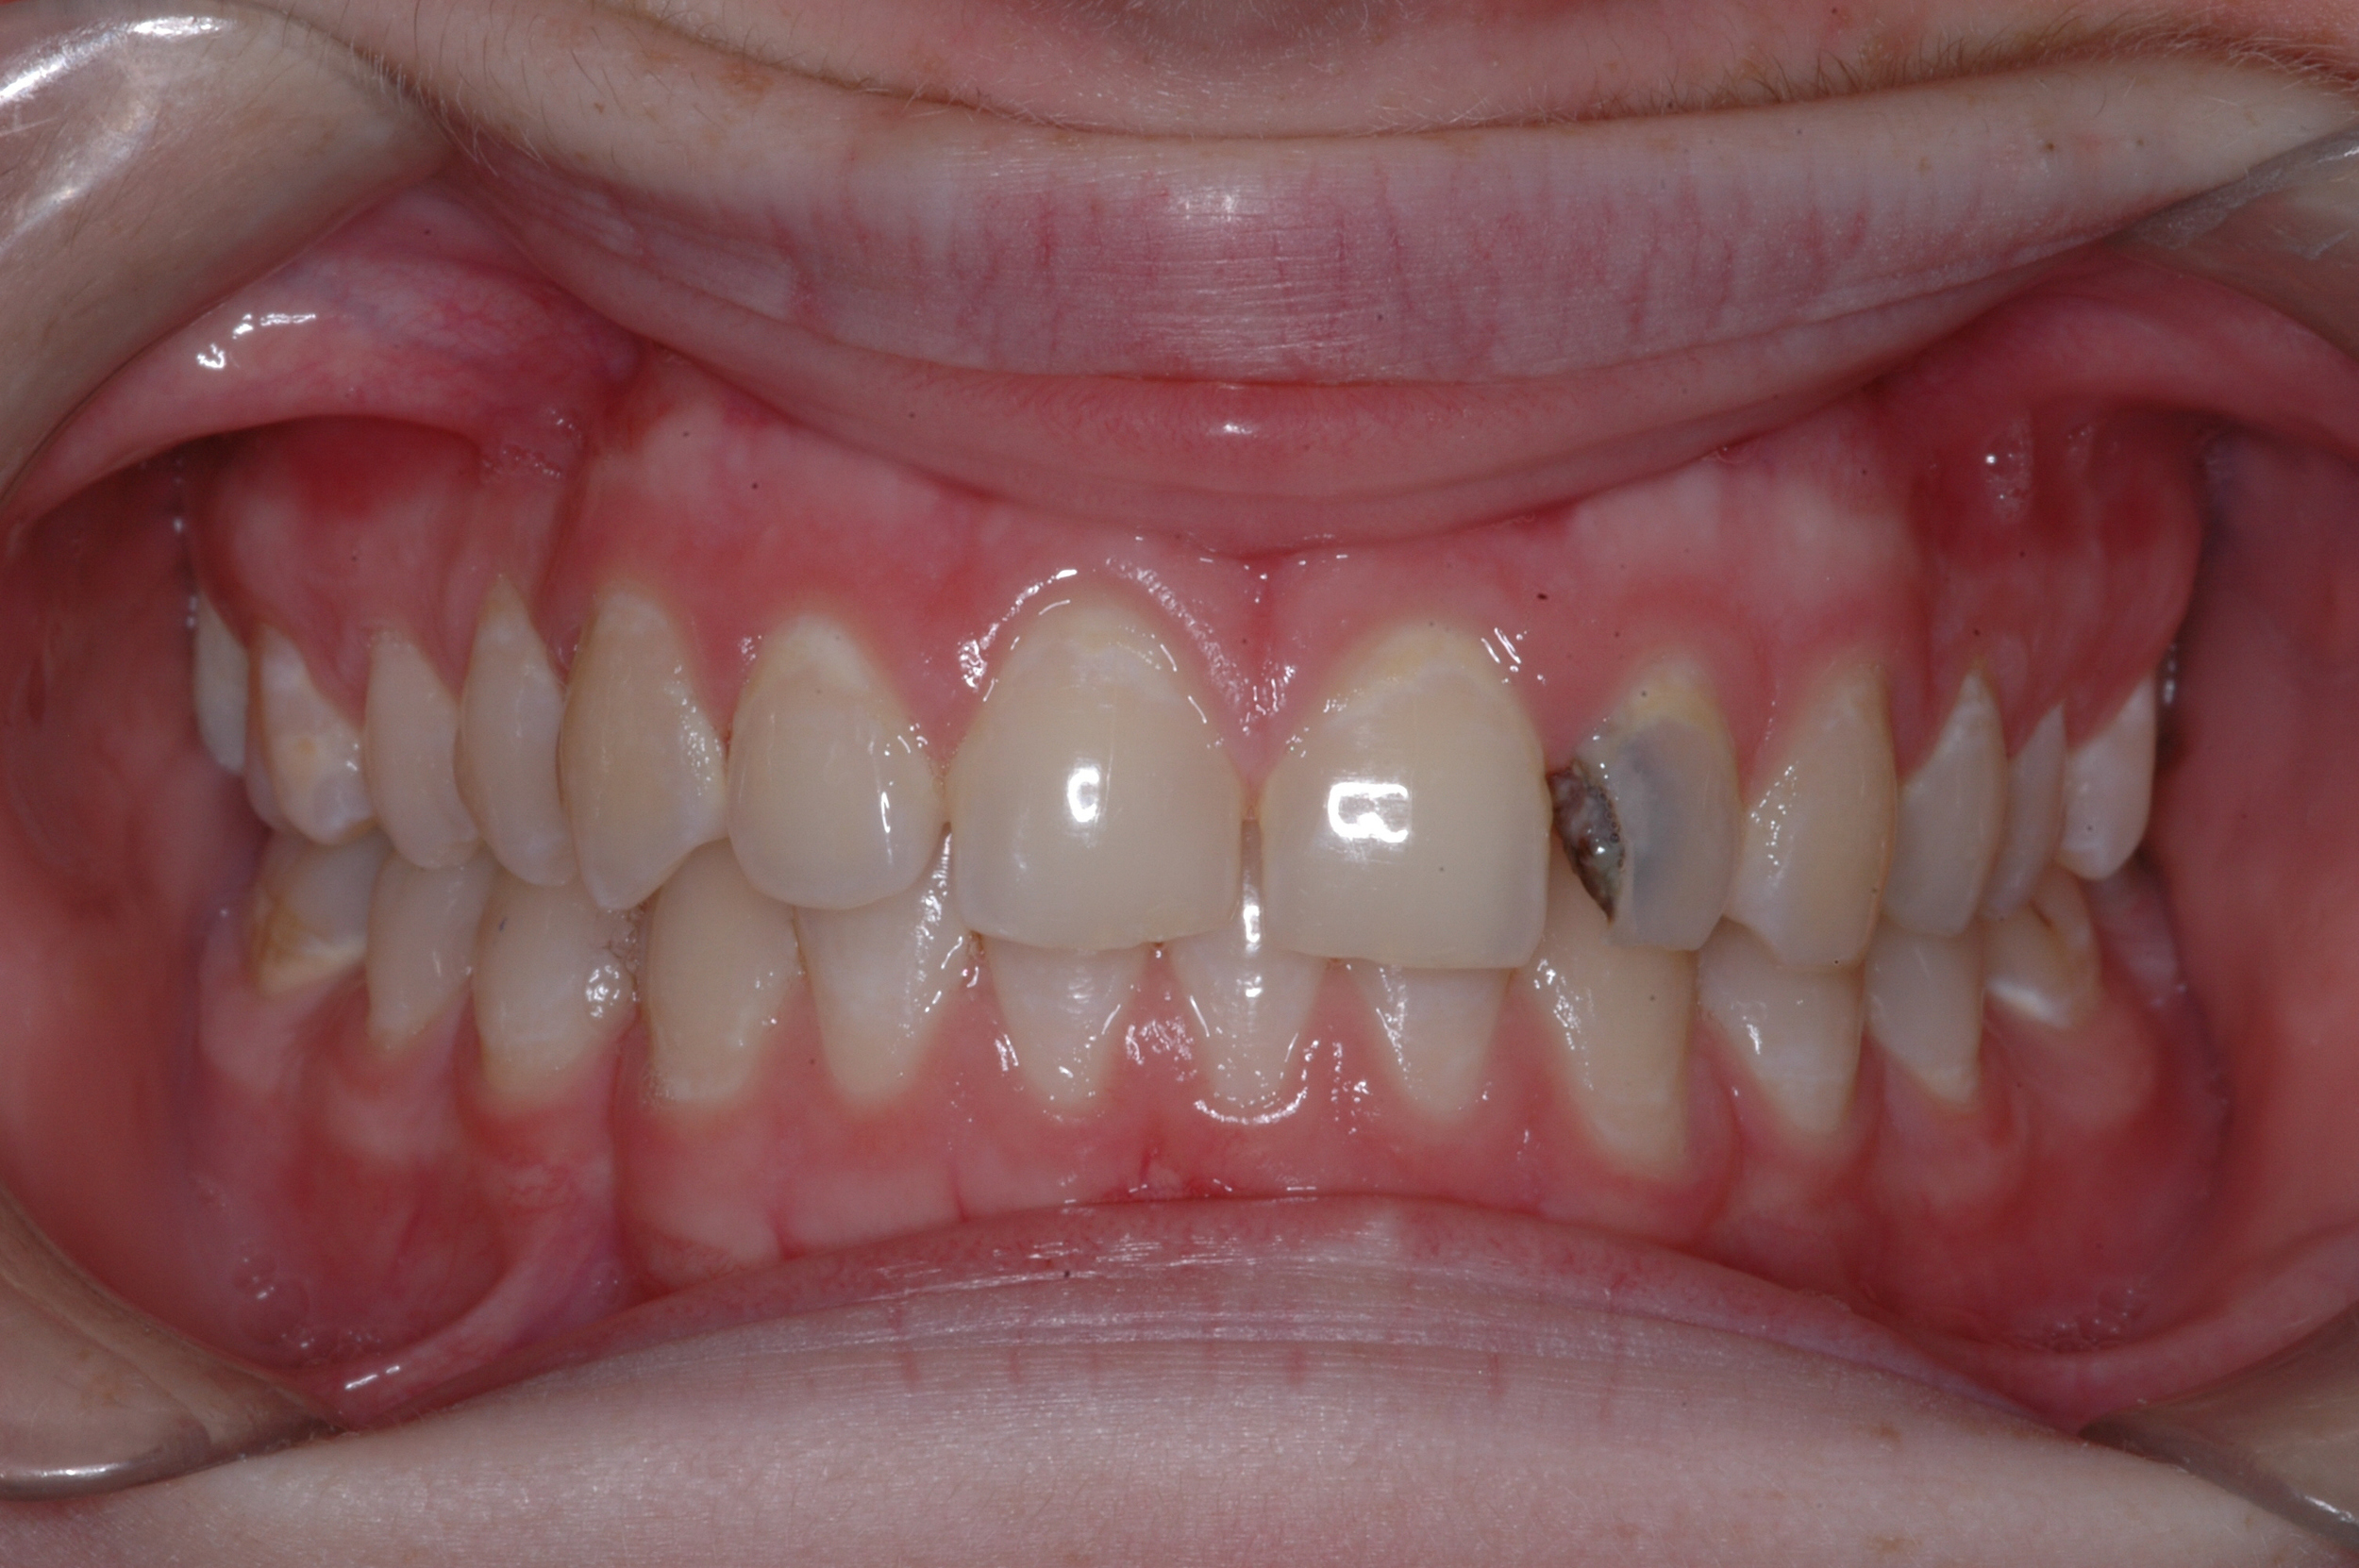 Our patient was an 18 year old female who presented with quite a bit of decay on her left lateral incisor